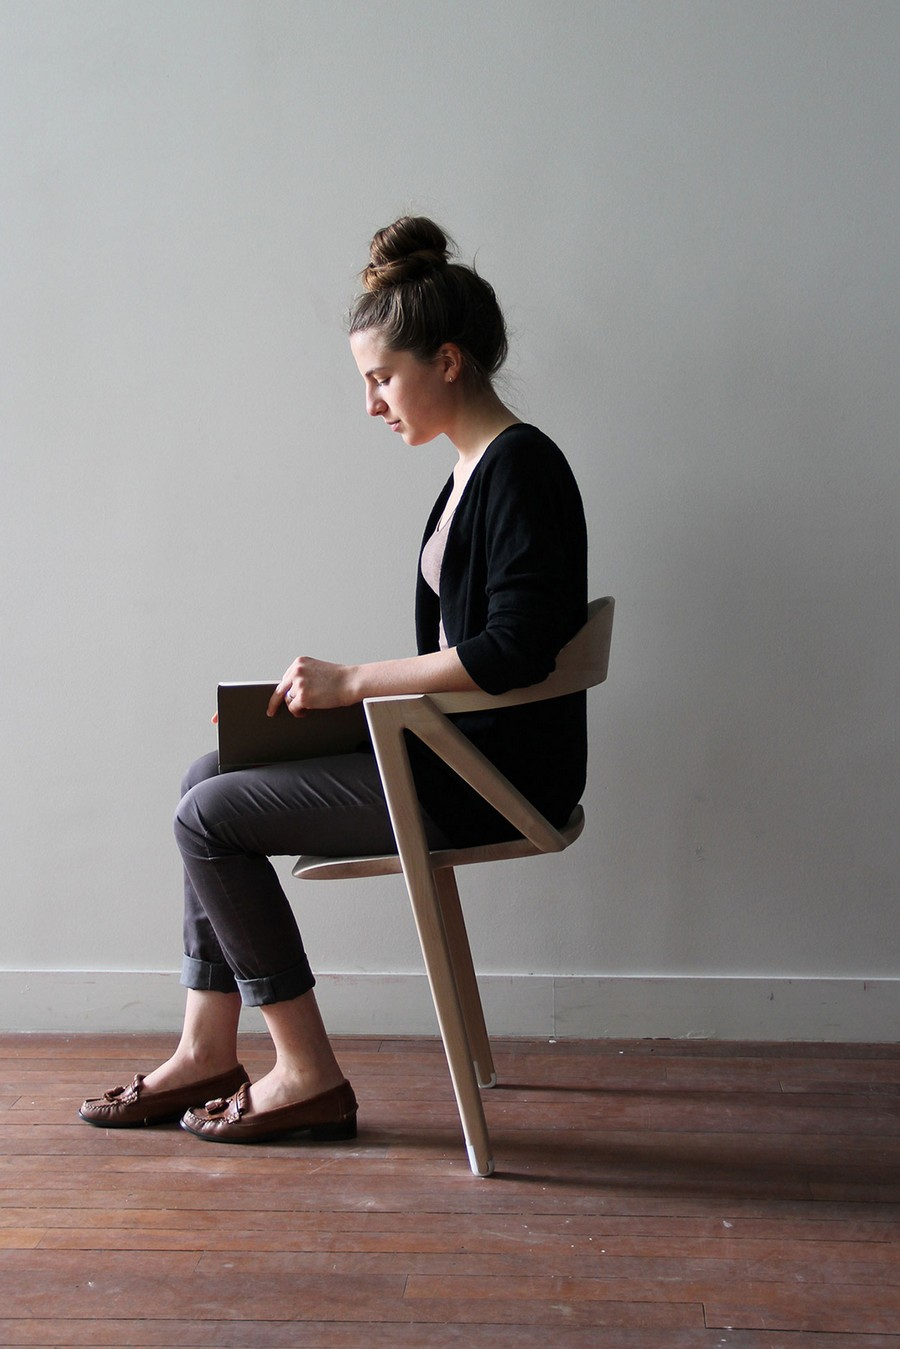 3-2-inactivite-by-benoit-malta-chair-on-two-legs-light-wood-inconvenient-design-of-office-chair